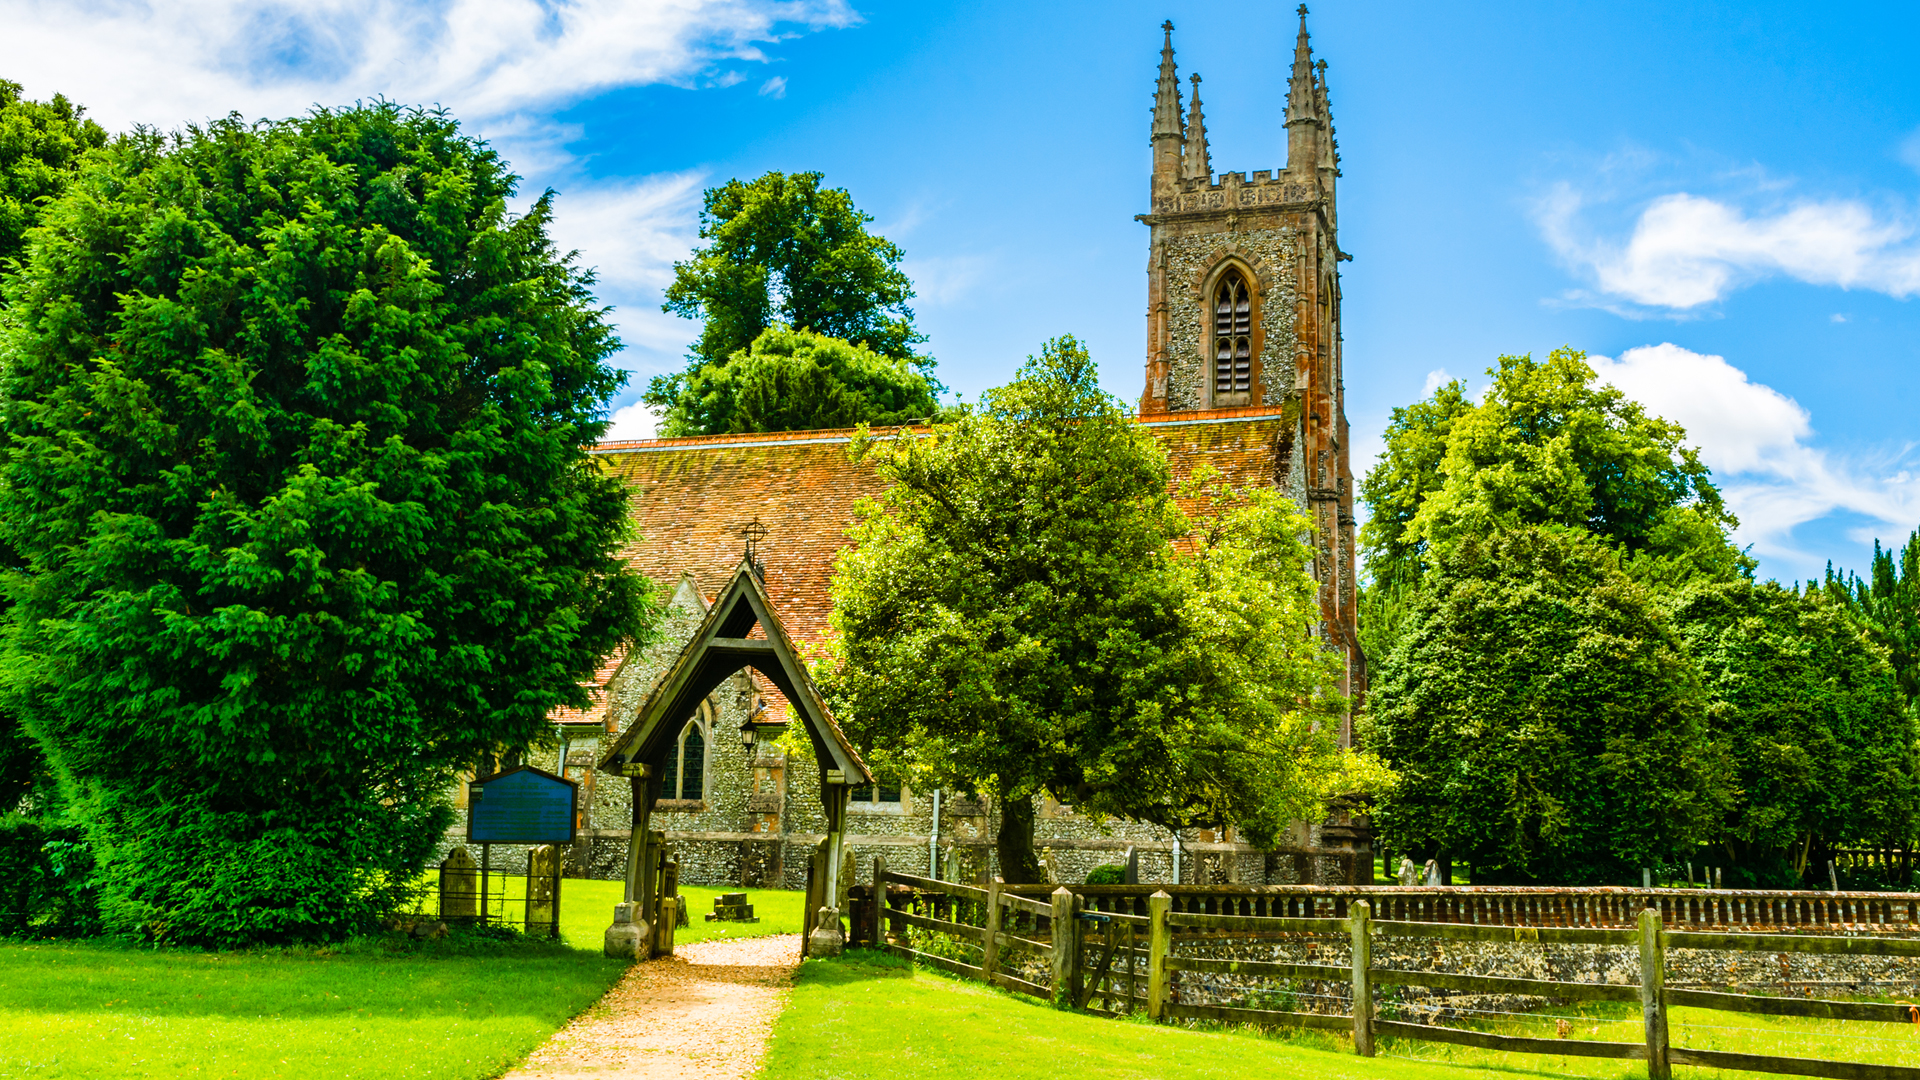 How to read the English Country Church